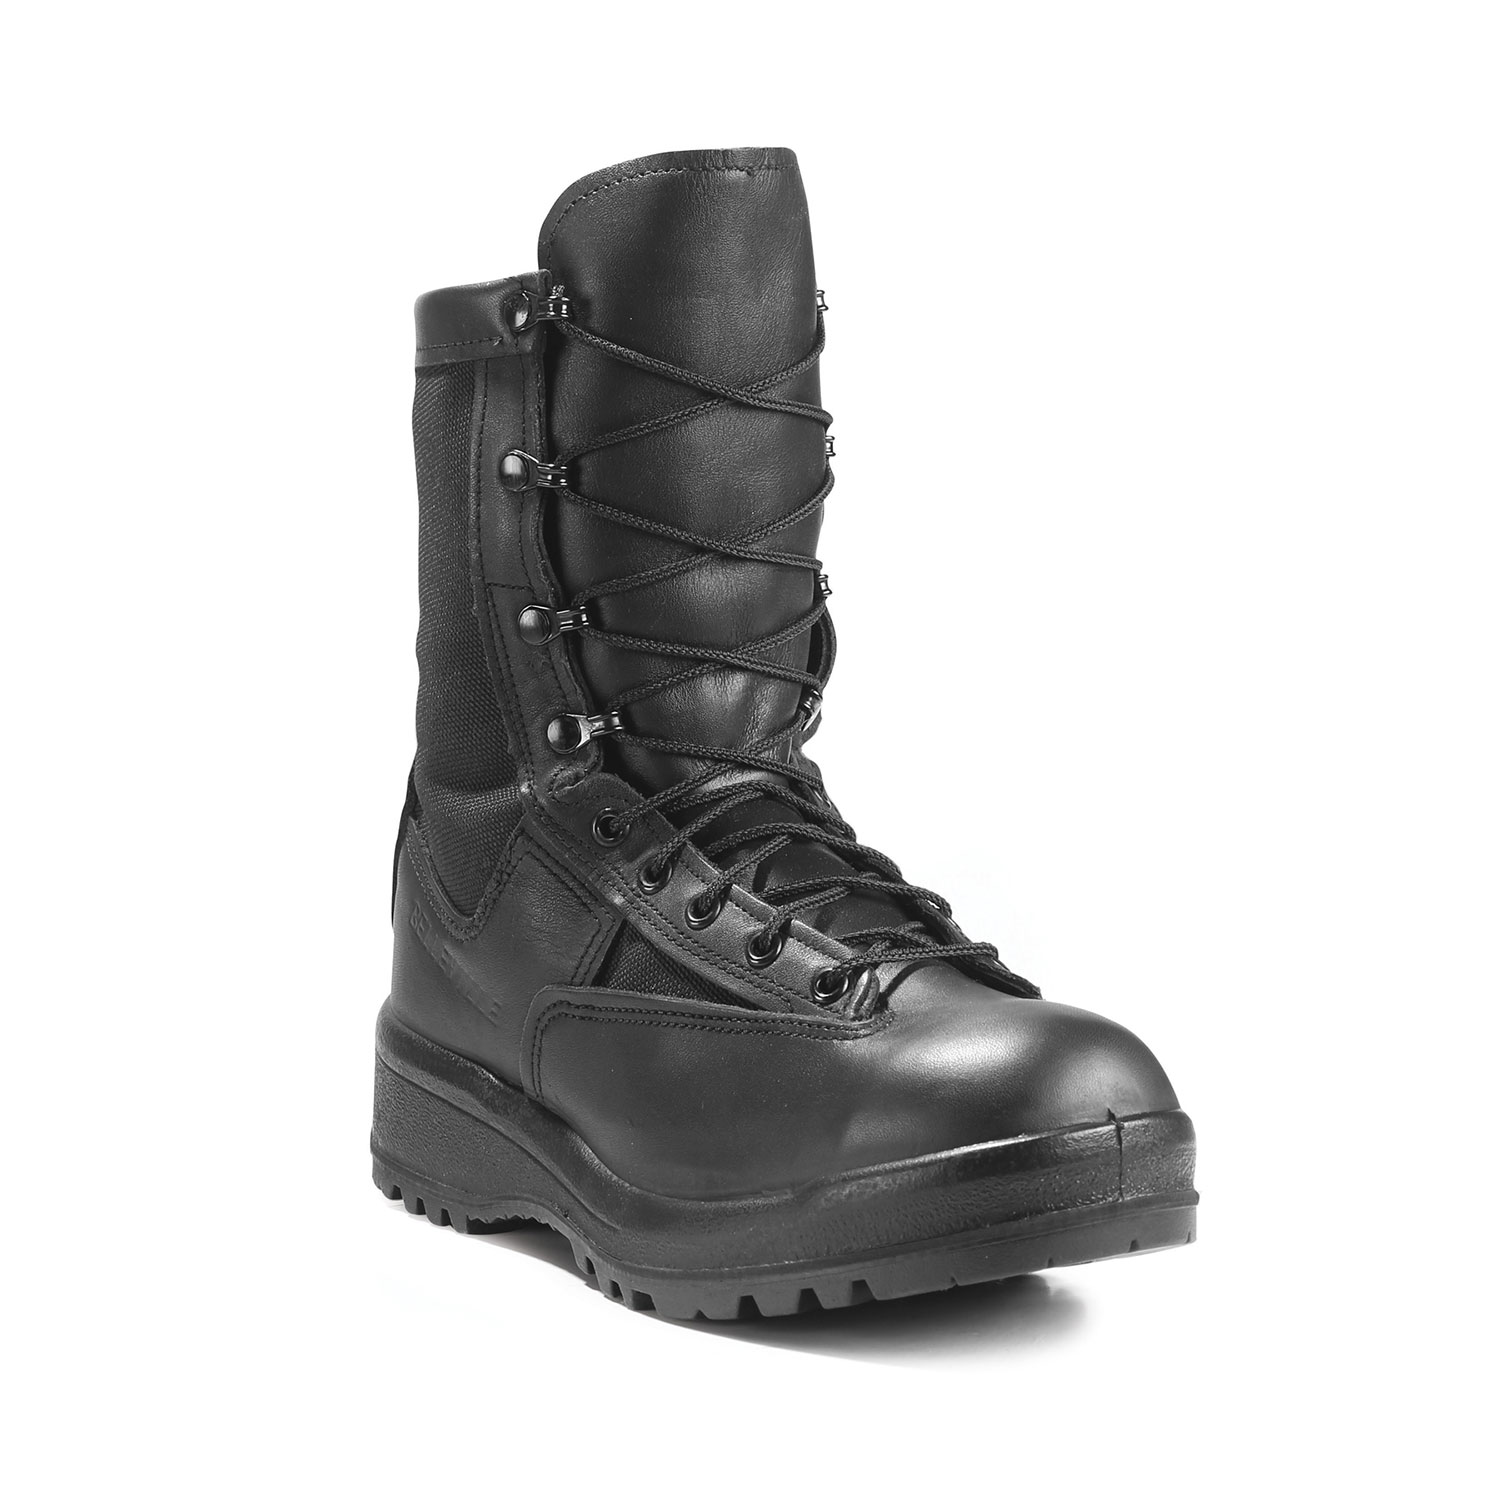 Belleville Waterproof Duty Boot